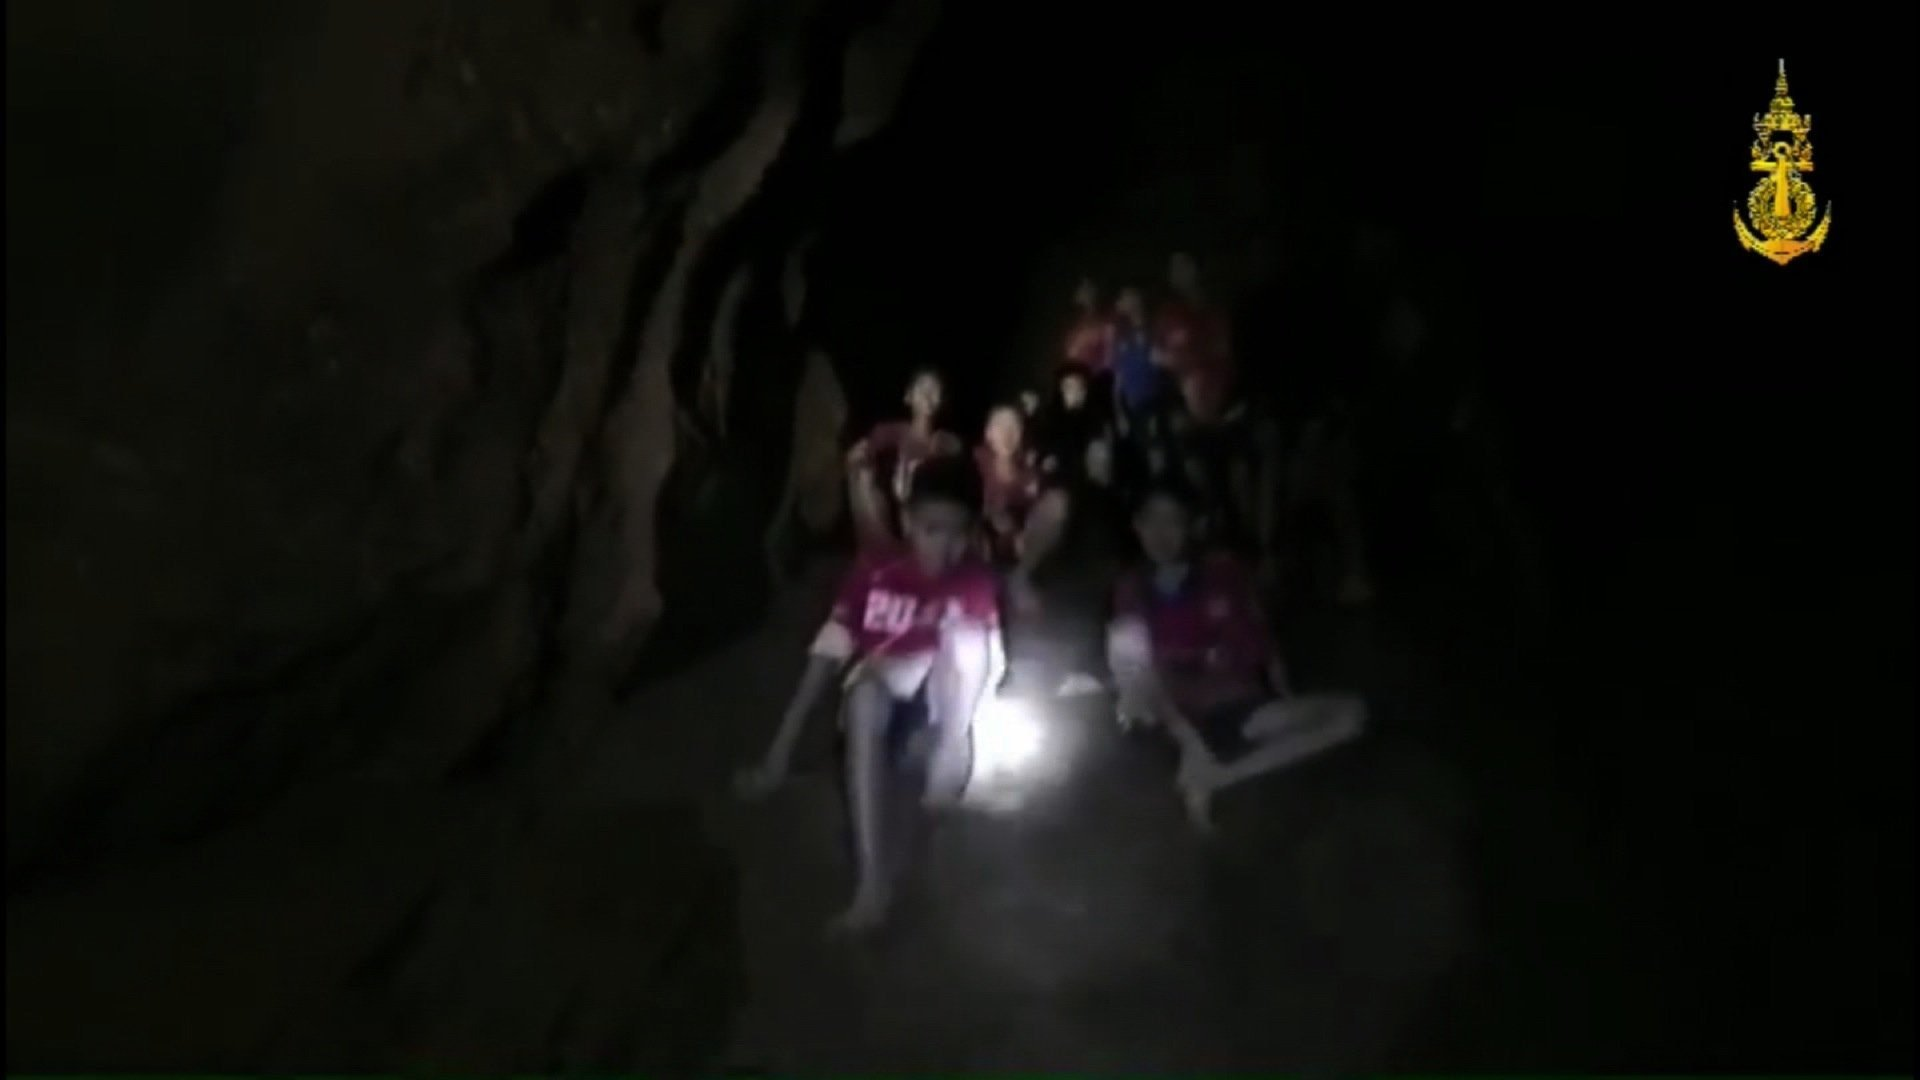 Rescue efforts are underway and hopes are high, after 12 boys and their soccer coach trapped in a Thai cave for more than a week were found alive.